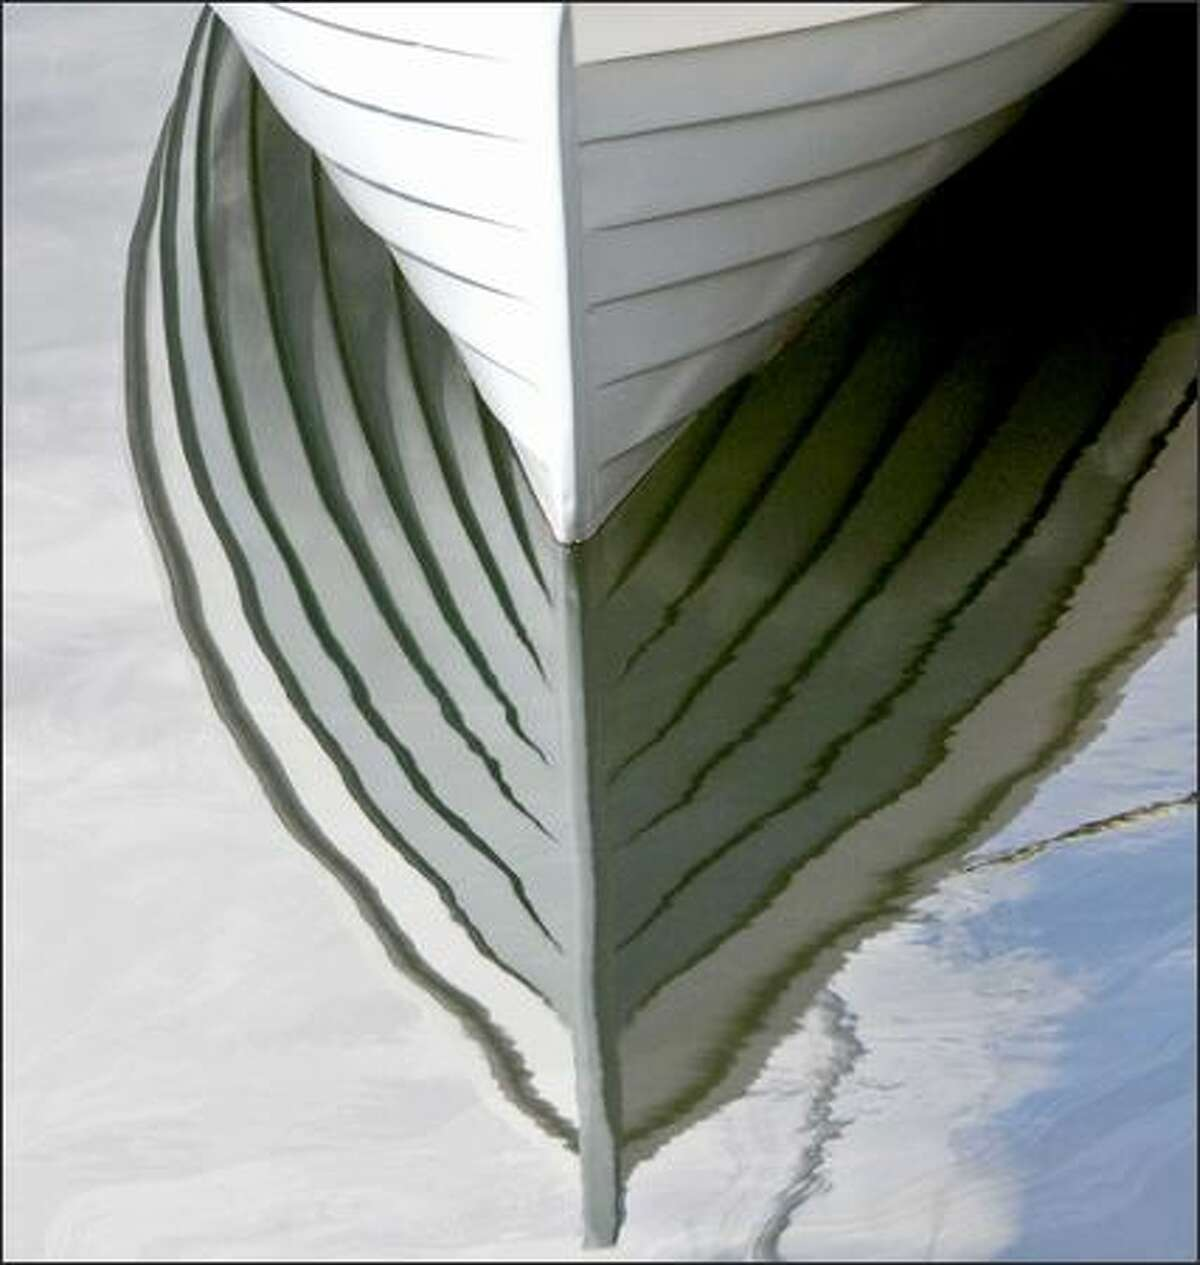 The lines of a Lake Oswego Boat are reflected in the water at the Center for Wooden Boats.